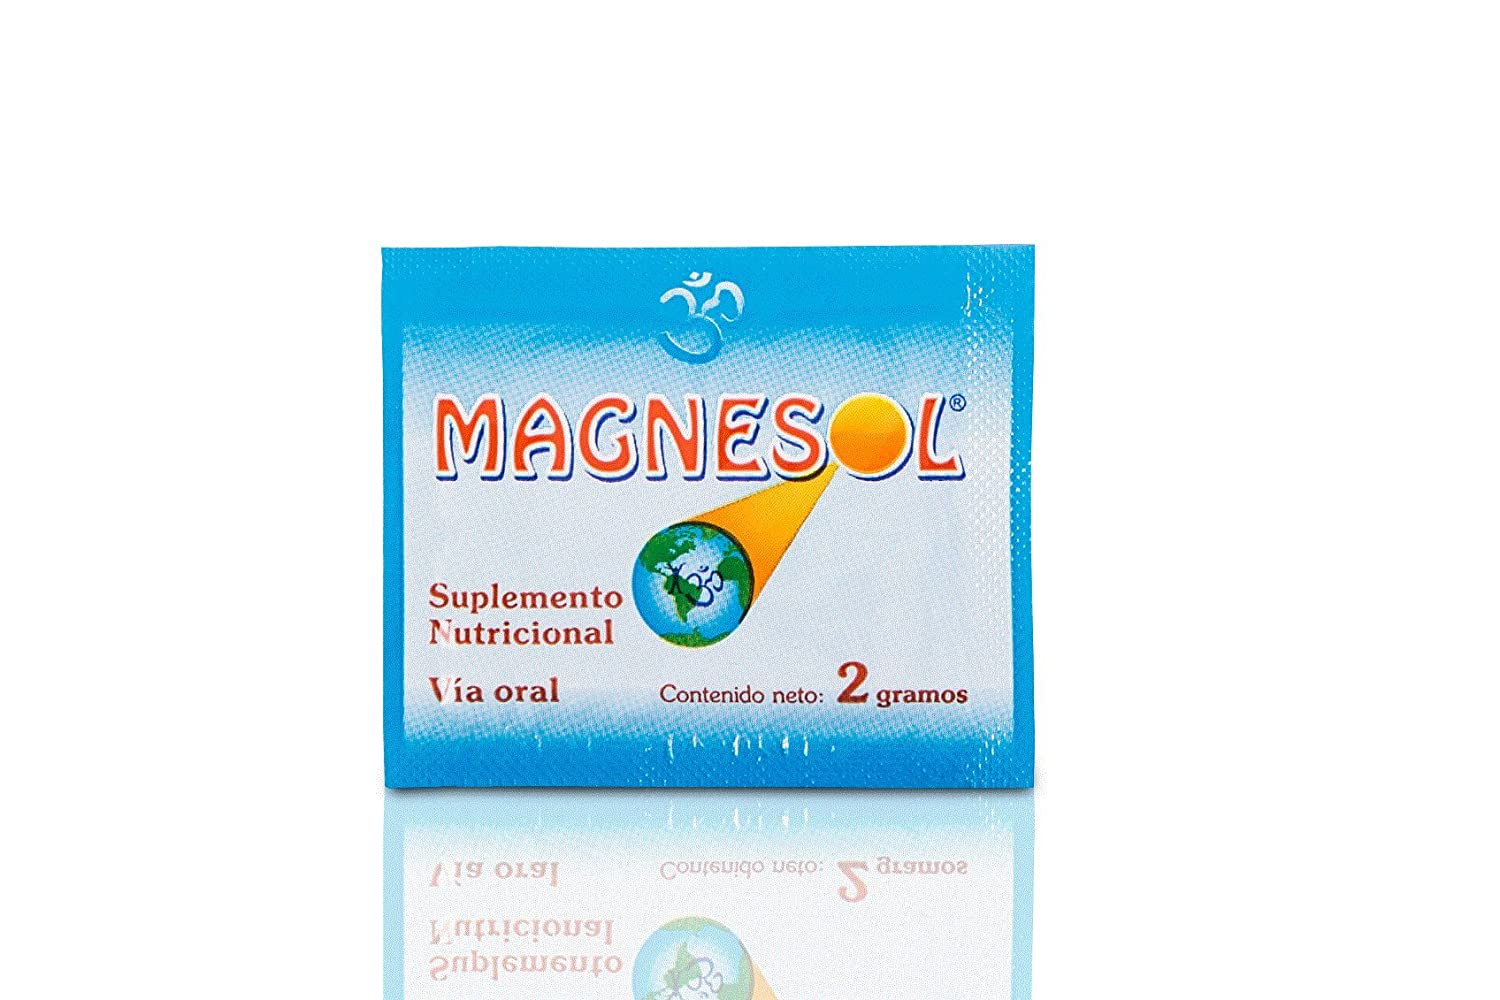 Amazon.com: Magnesol Clasico 33 Count Magnesium 2000mg: Health & Personal Care